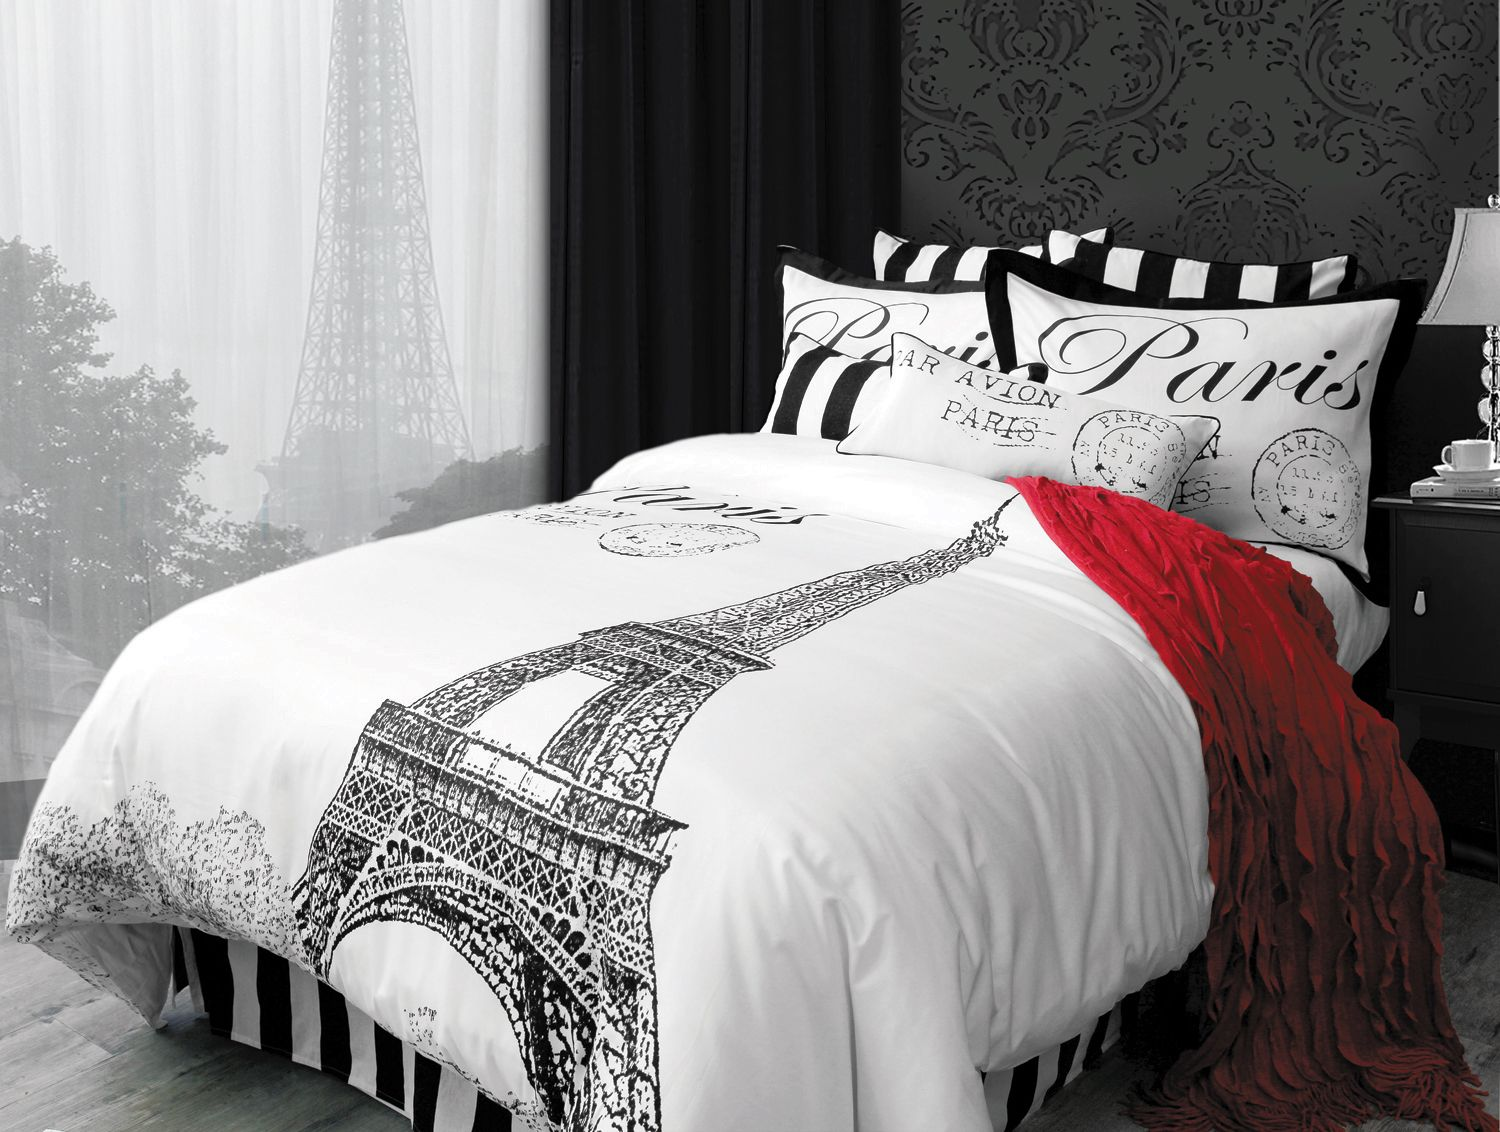 a fabulous trip abroad is waiting for you as you cover your bed with the beautiful paris inspired pattern the large eiffel tower